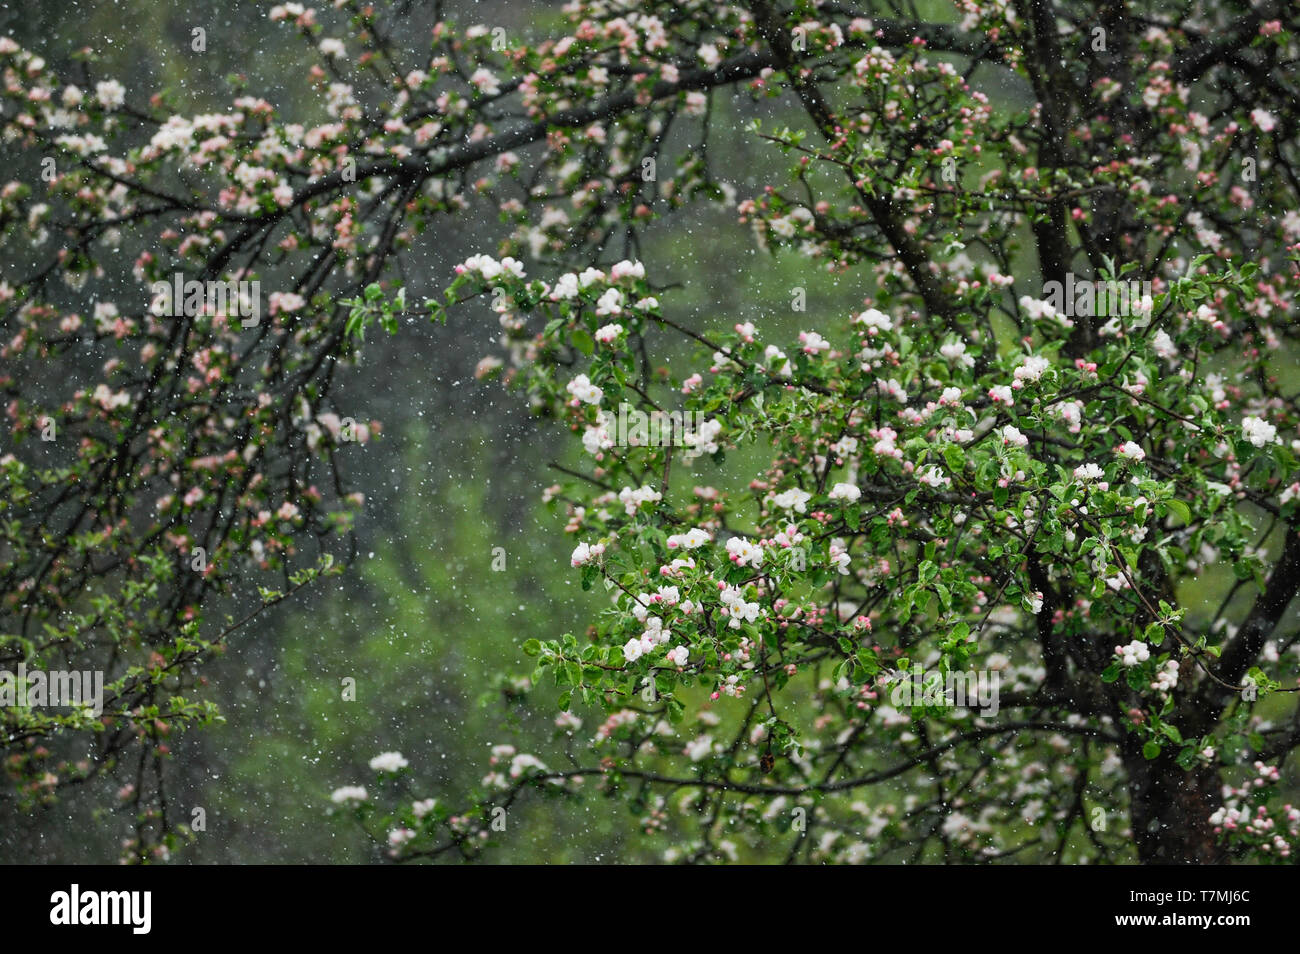 Snow Falling on Blooming Tree. Springtime in Central Europe. - Stock Image